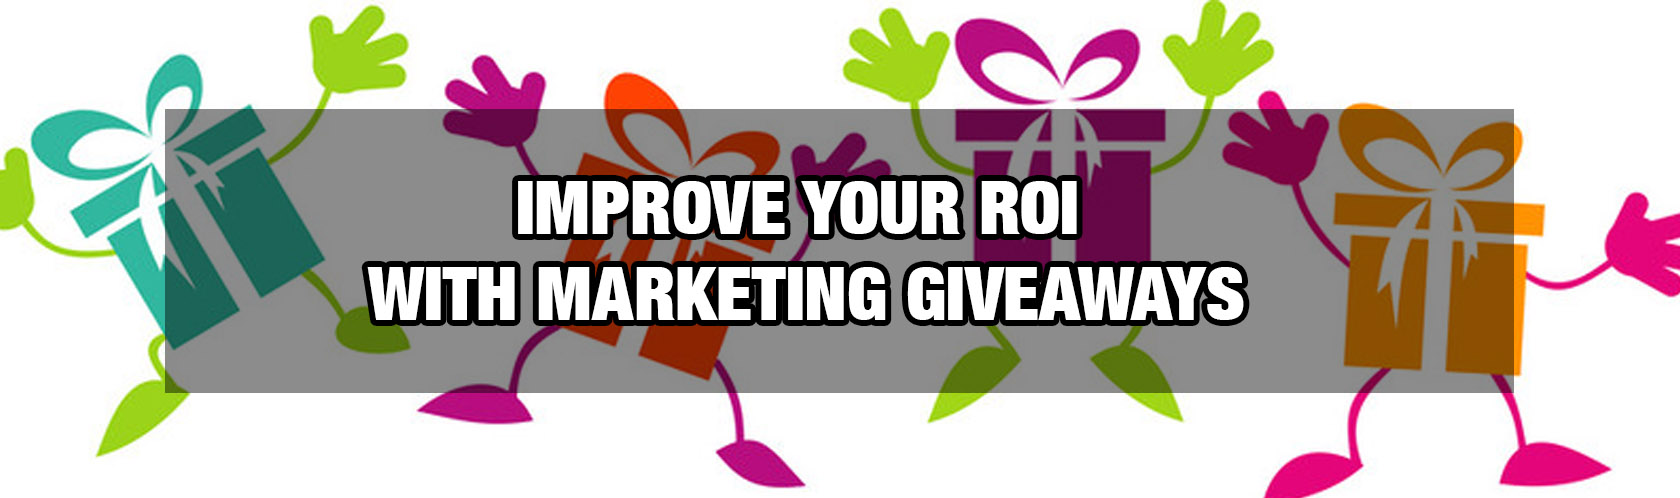 Improve your ROI With Marketing Giveaways